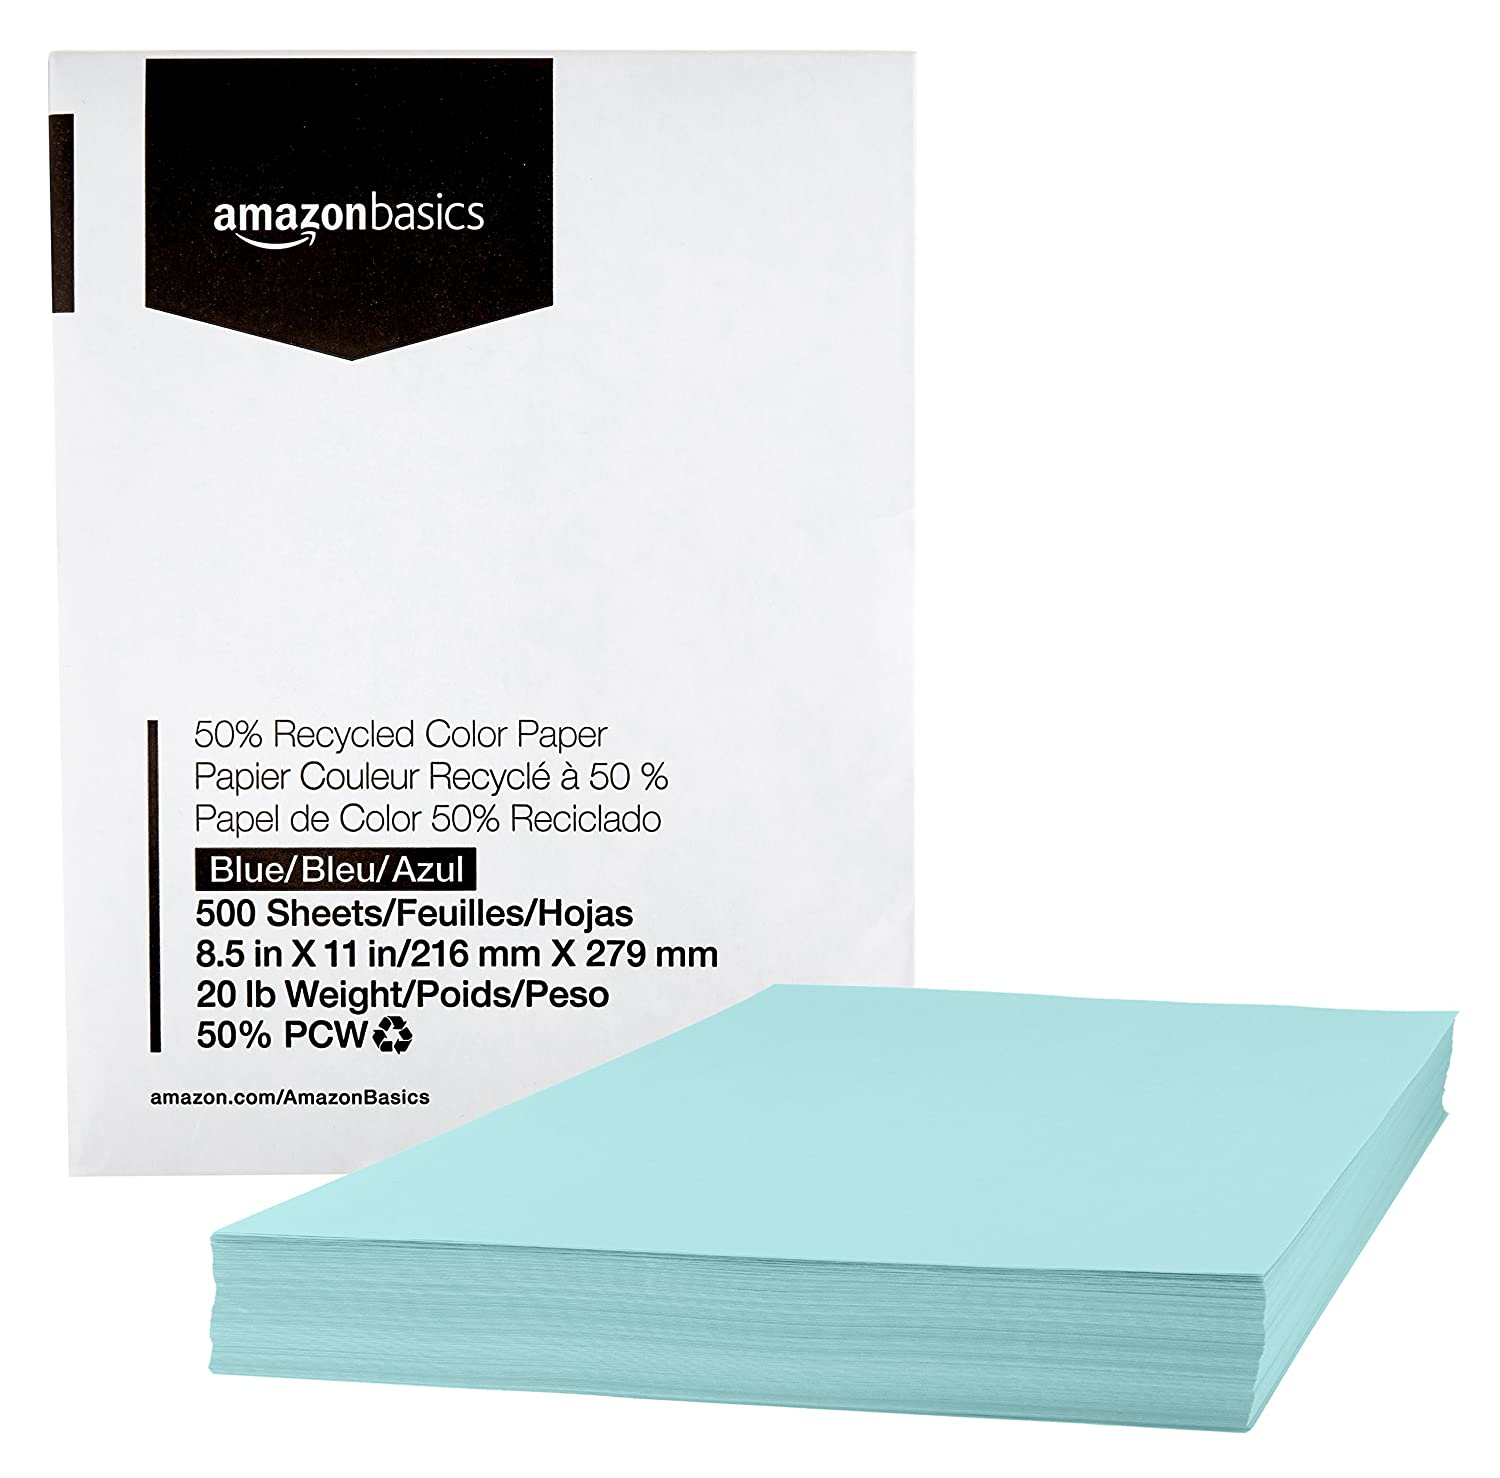 AmazonBasics 50% Recycled Color Paper - Yellow, 8.5 x 11 Inches, 20 lbs, 1 Ream (500 Sheets) AMZ8511CA1R